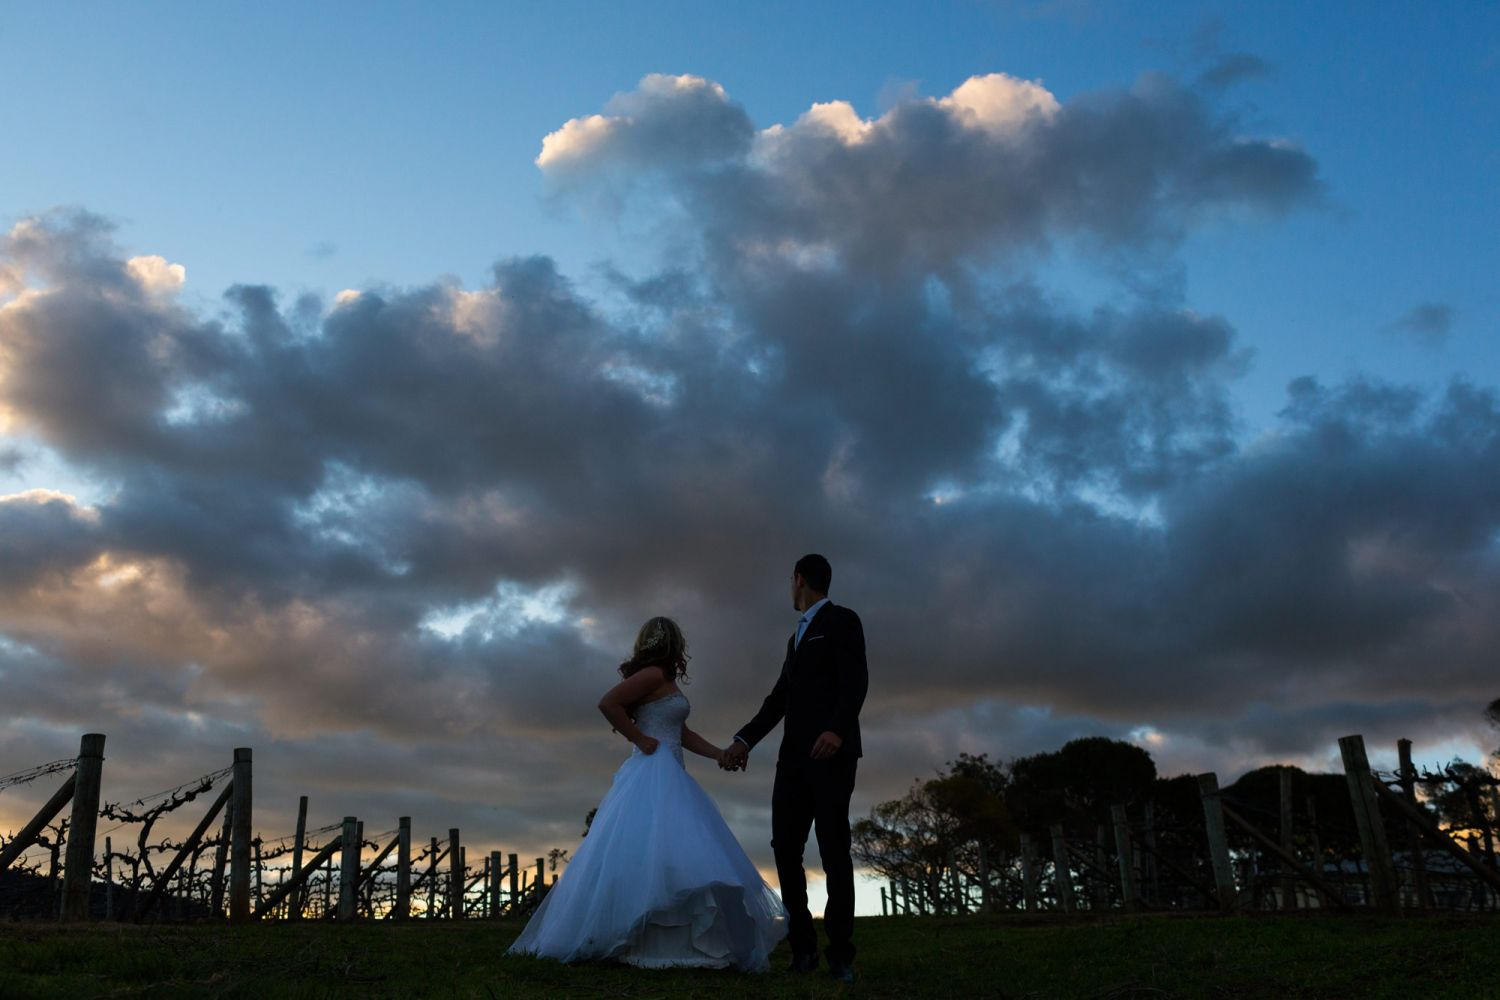 22_wedding-photographer-captures-awesome-sunset-at-lindemans